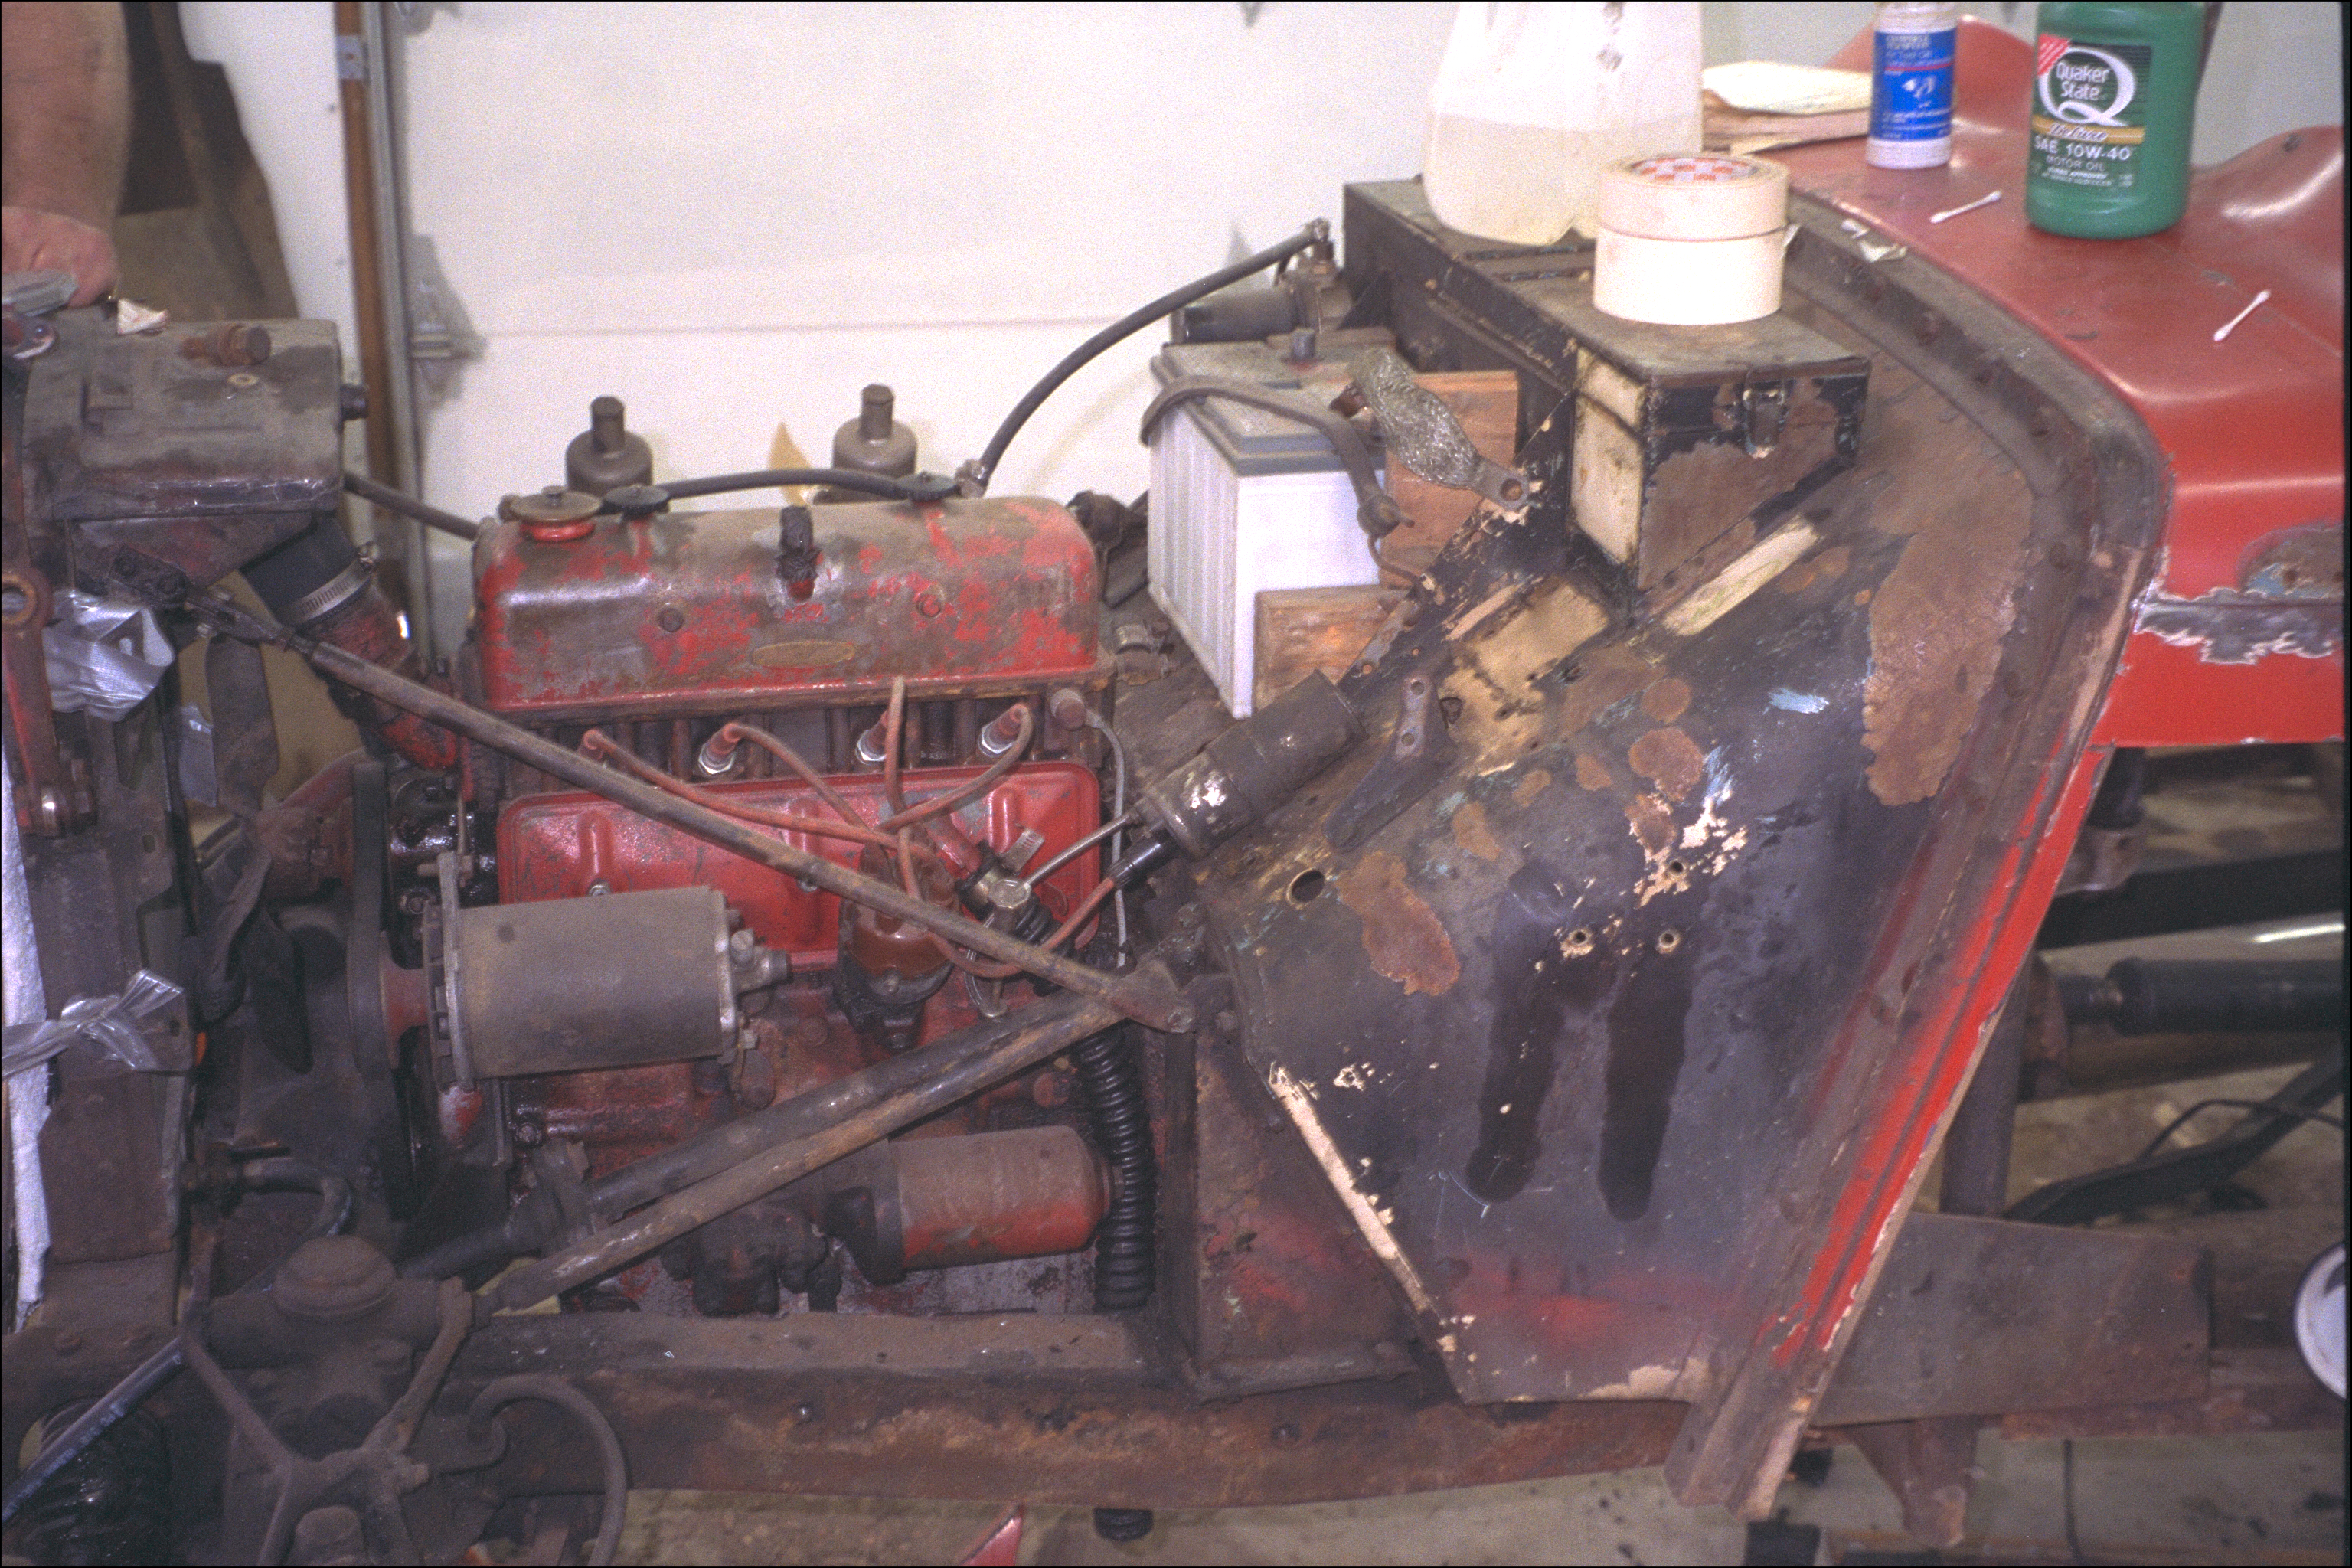 Engine stripped, viewed from left